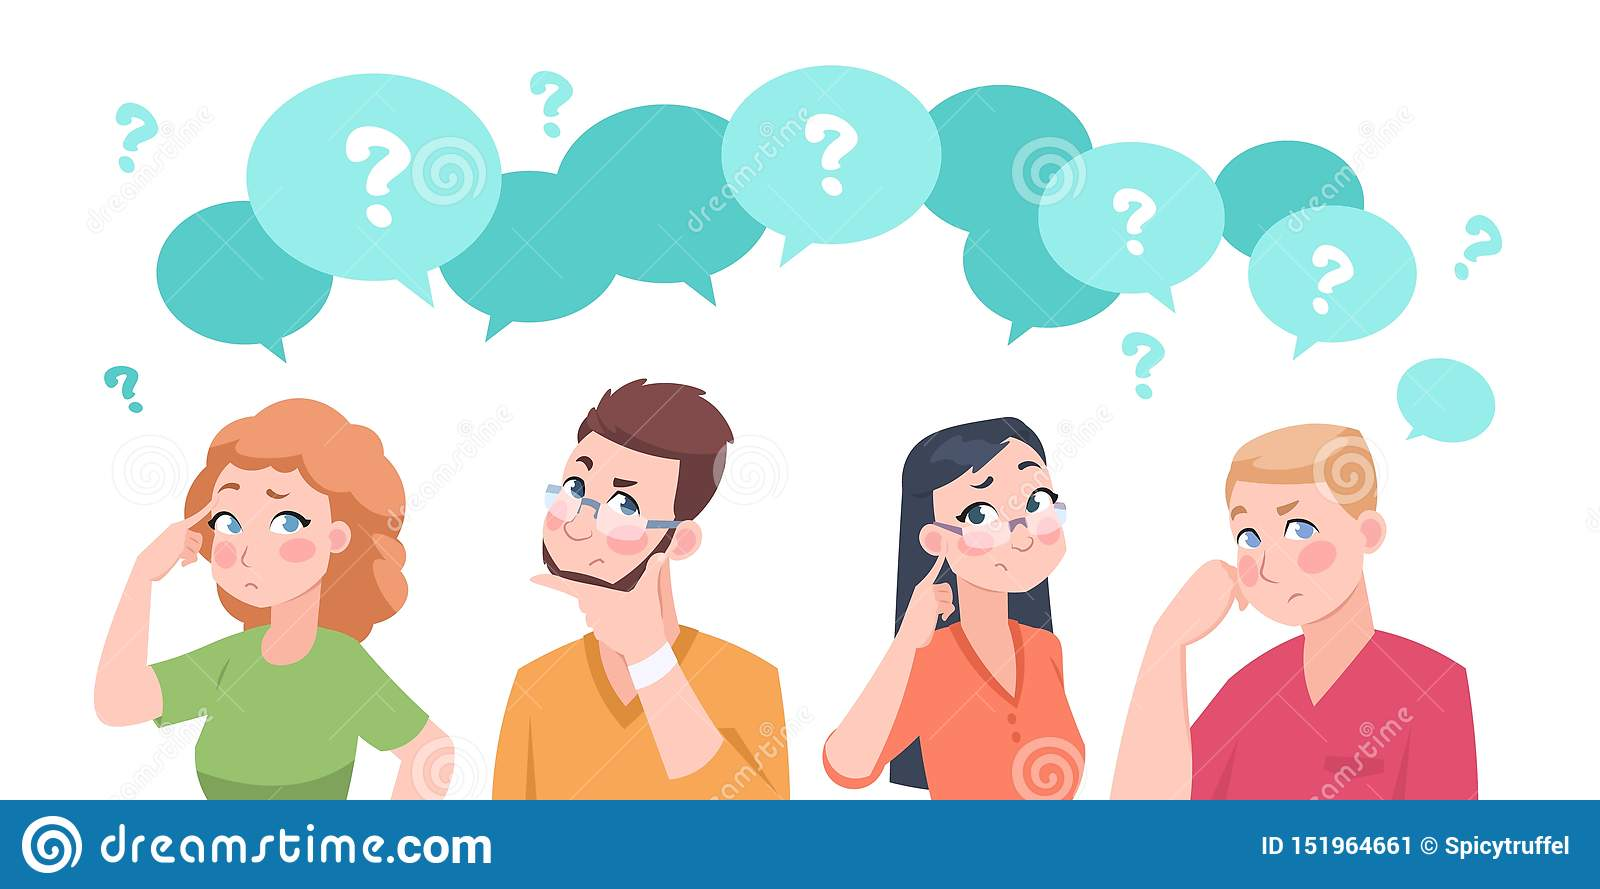 Confused Group Stock Illustrations – 933 Confused Group Stock  Illustrations, Vectors & Clipart - Dreamstime